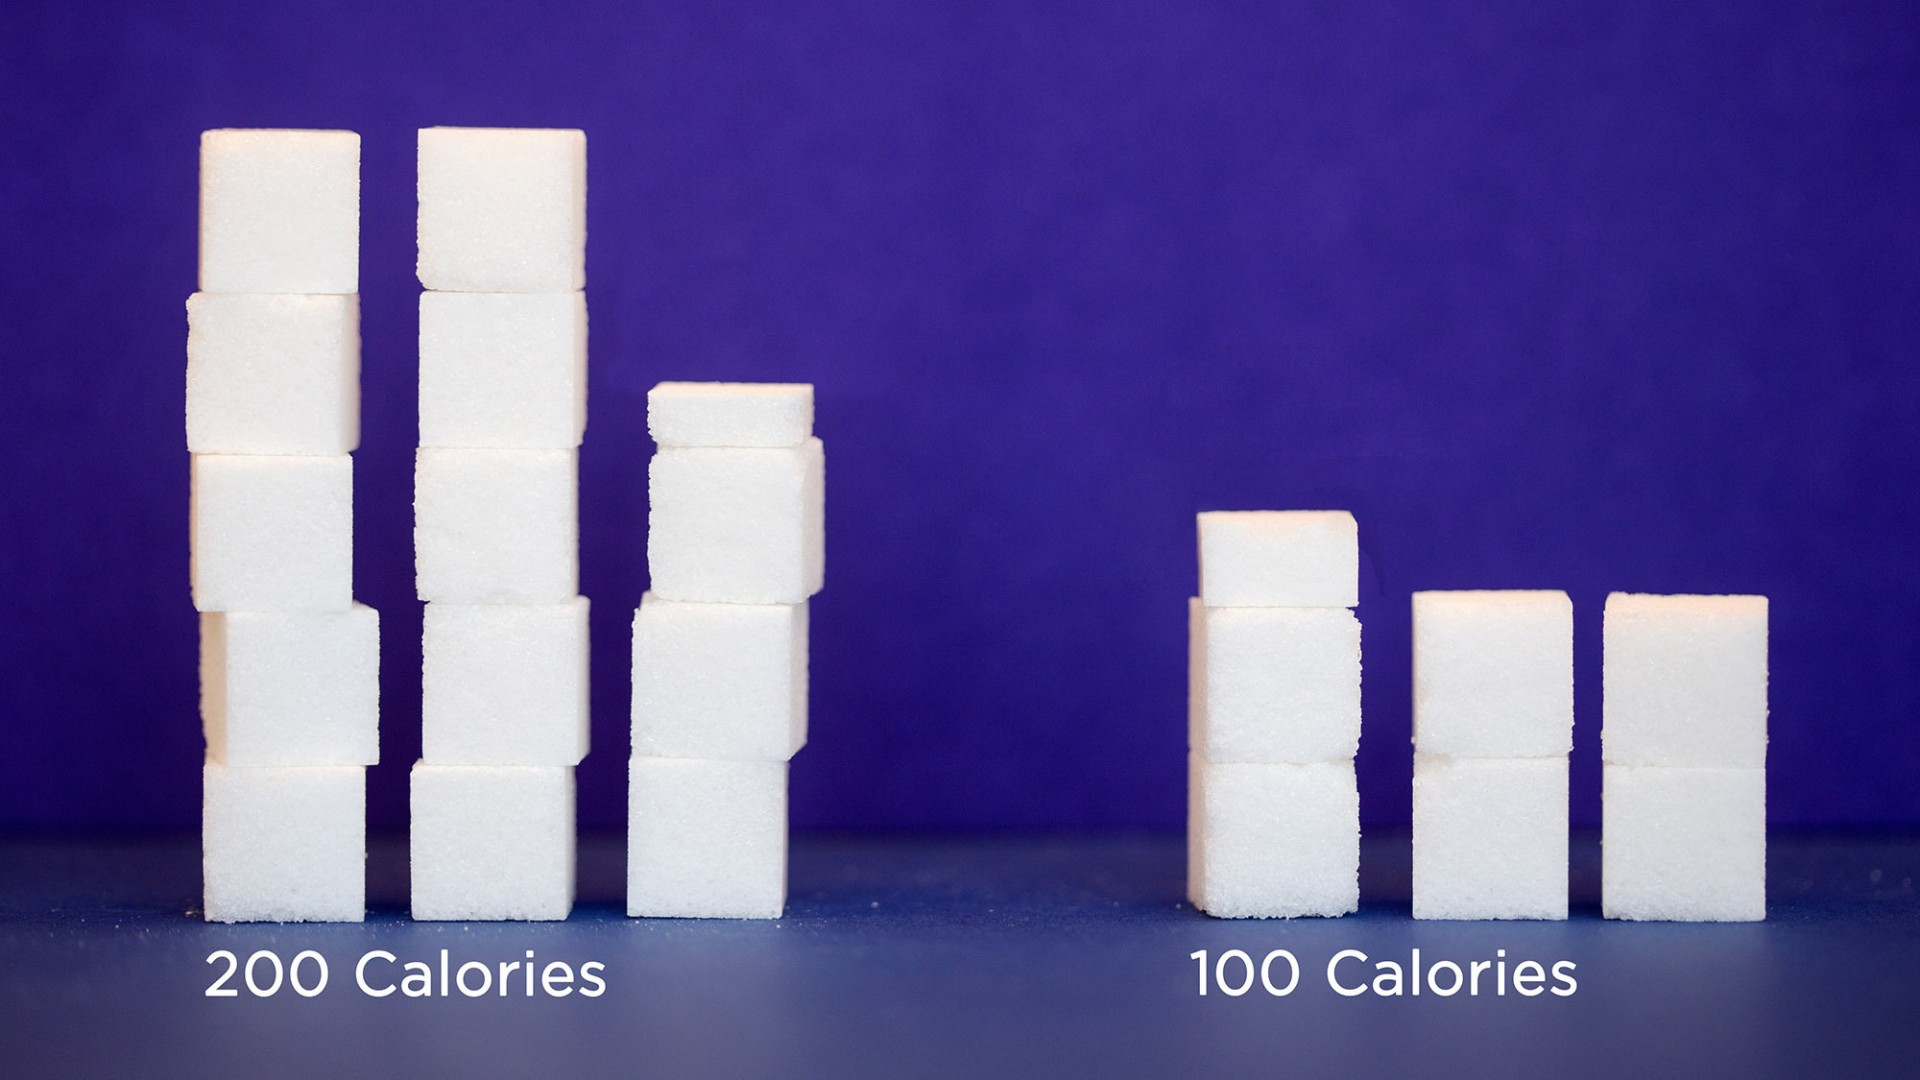 The World Health Organization recommends cutting sugar intake. Photo: Meredith Rizzo/NPR